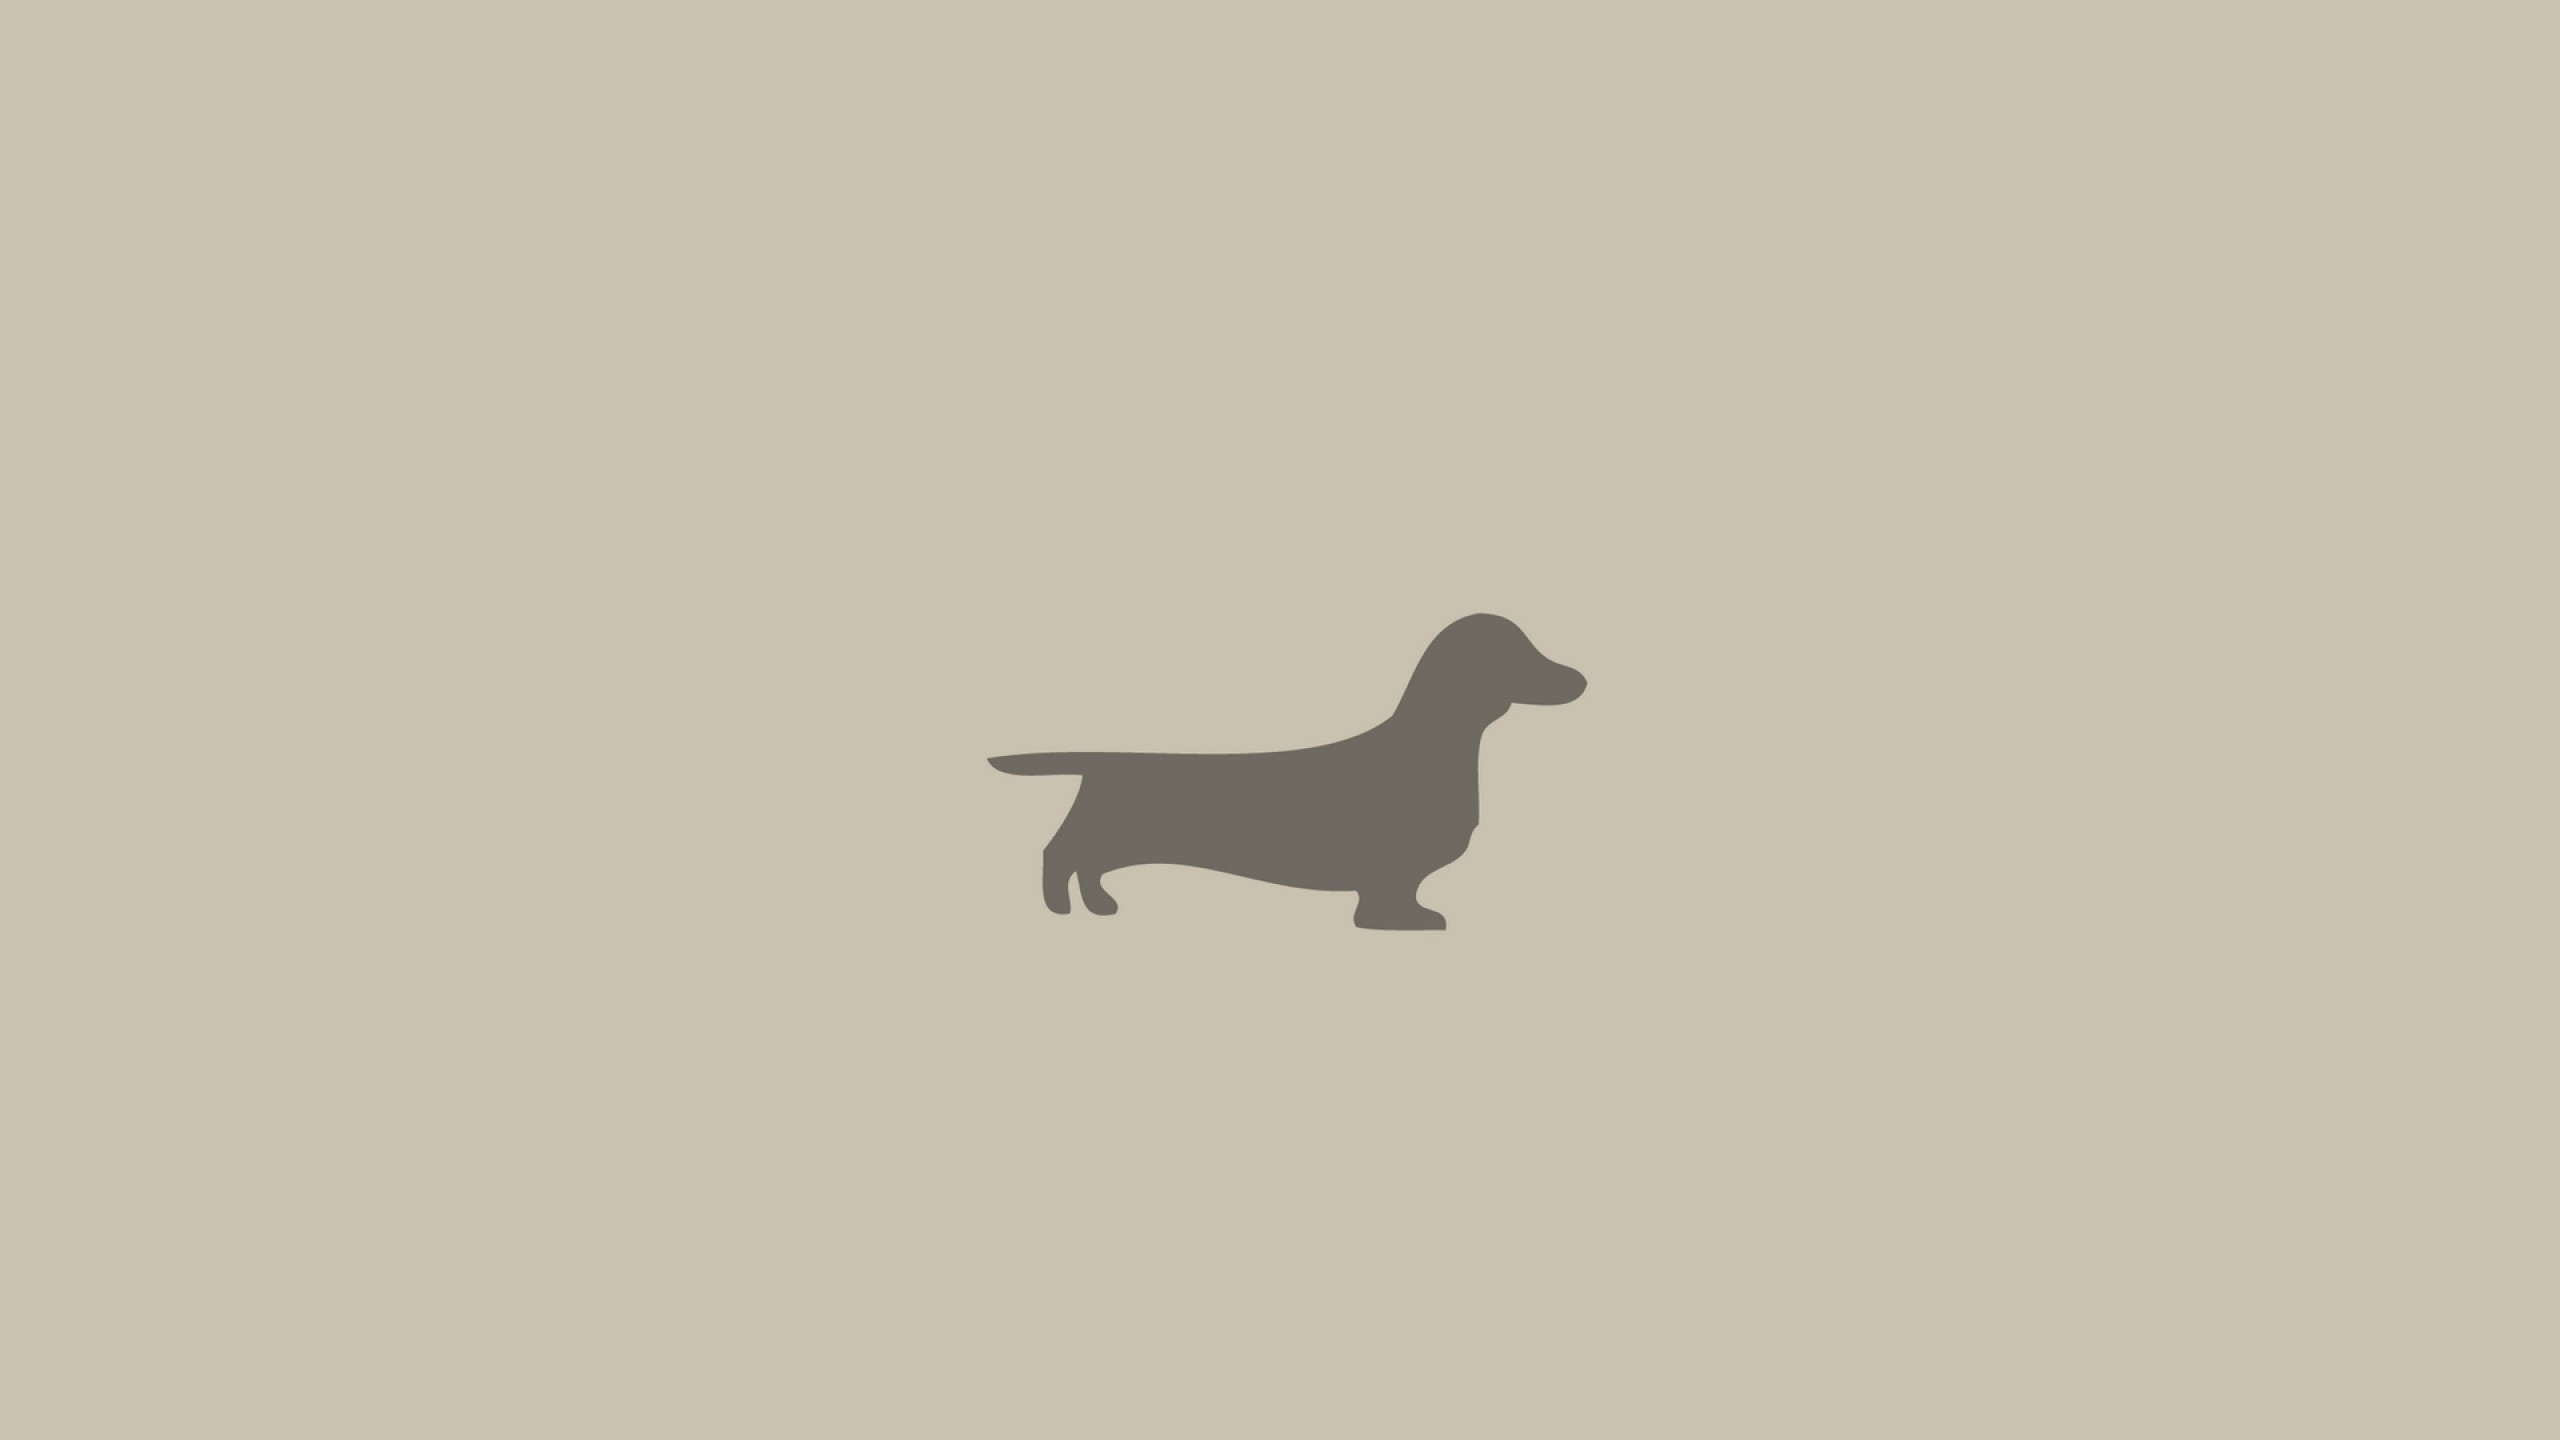 2560x1440  Wallpaper dachshund, dog, minimalism, animal